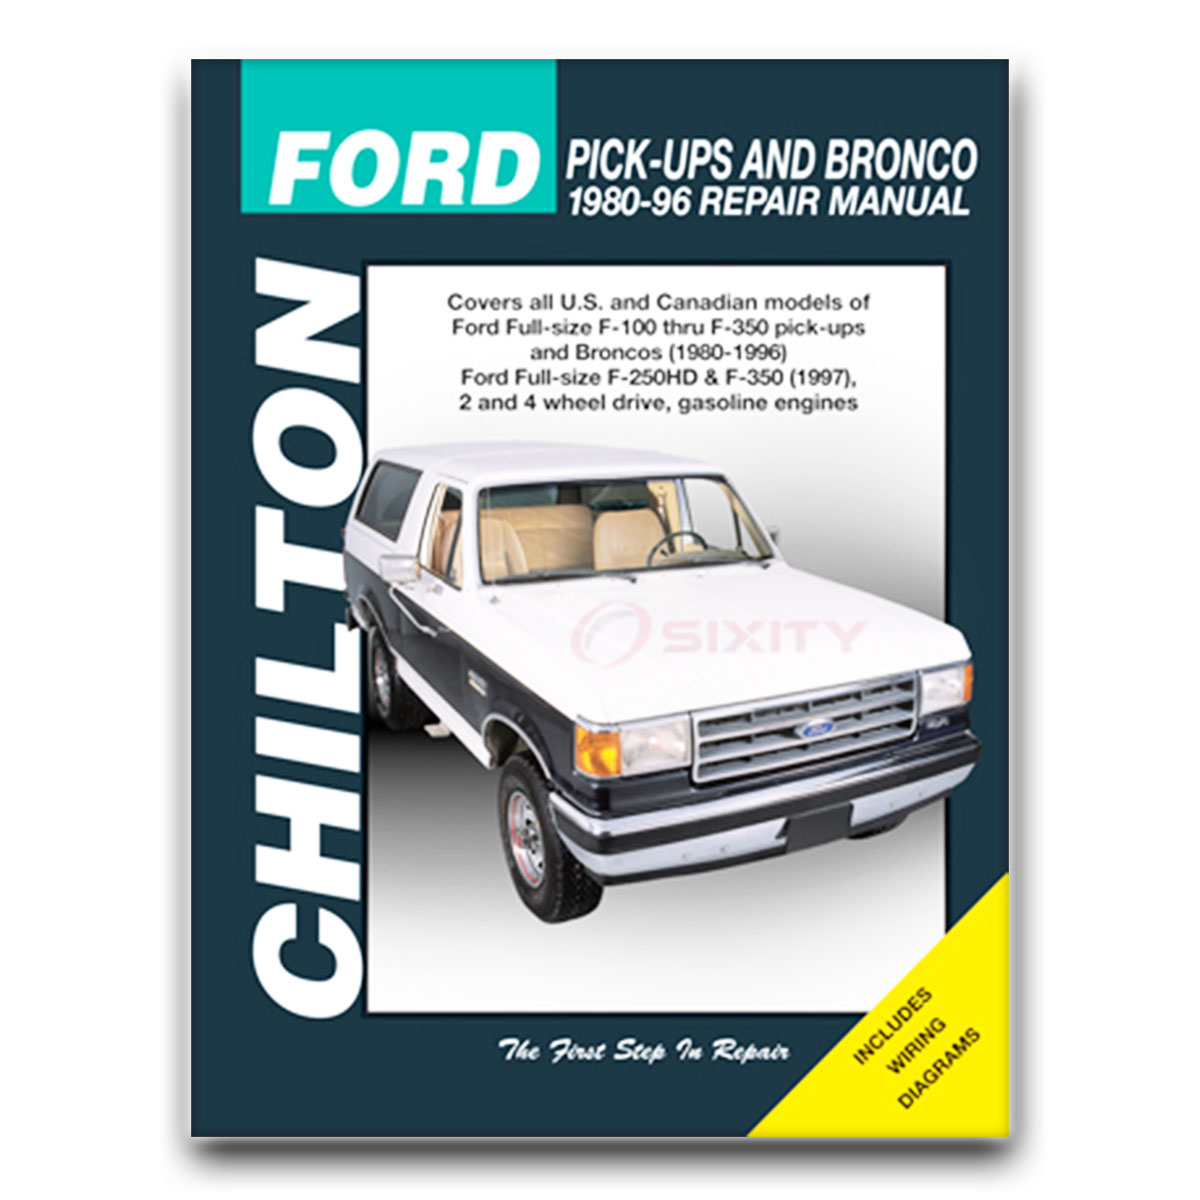 ford f150 shop manual various owner manual guide u2022 rh justk co 2012 f150 owners manual download 2012 f150 owners manual